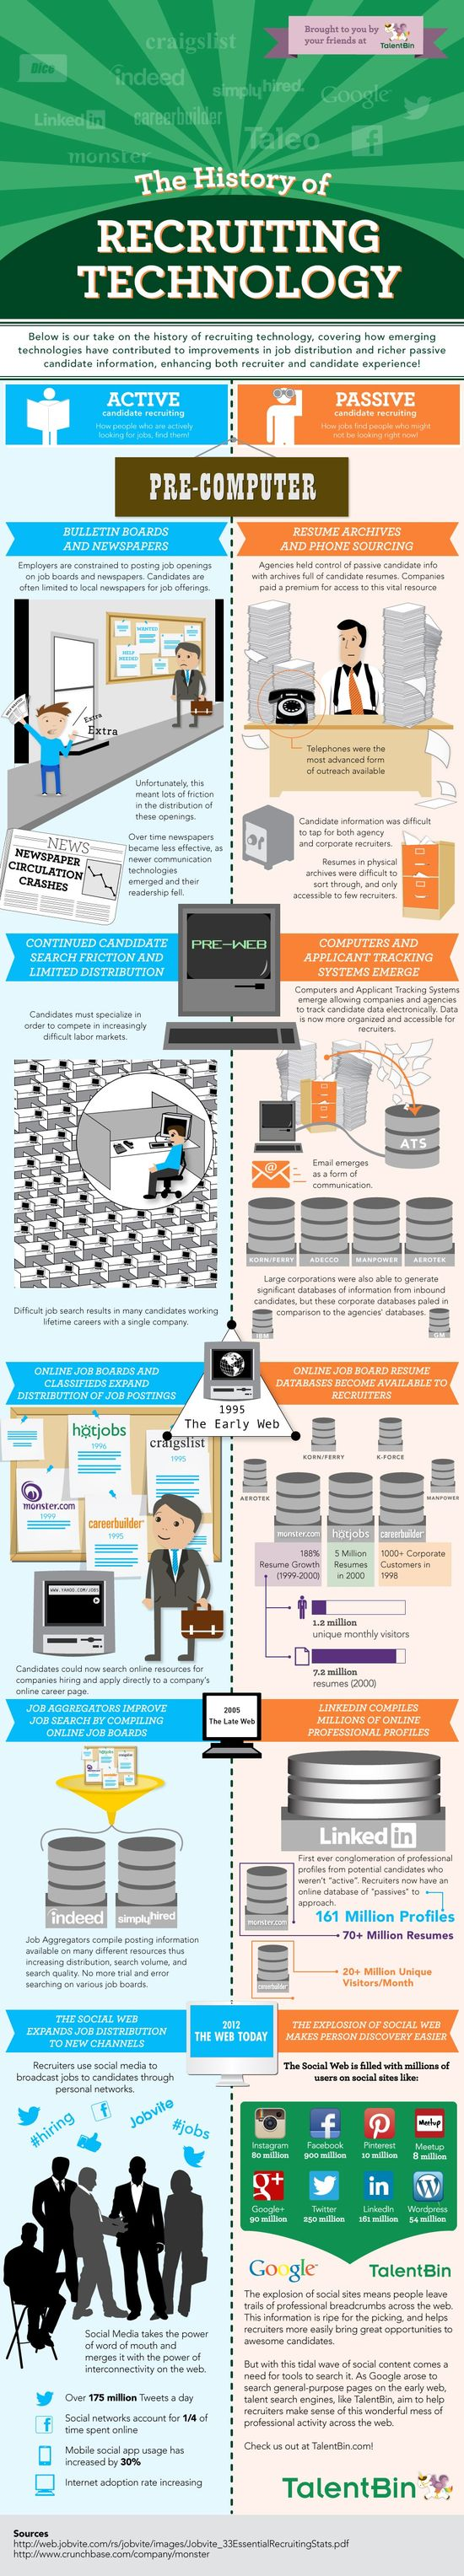 the history of recruiting technology infographic